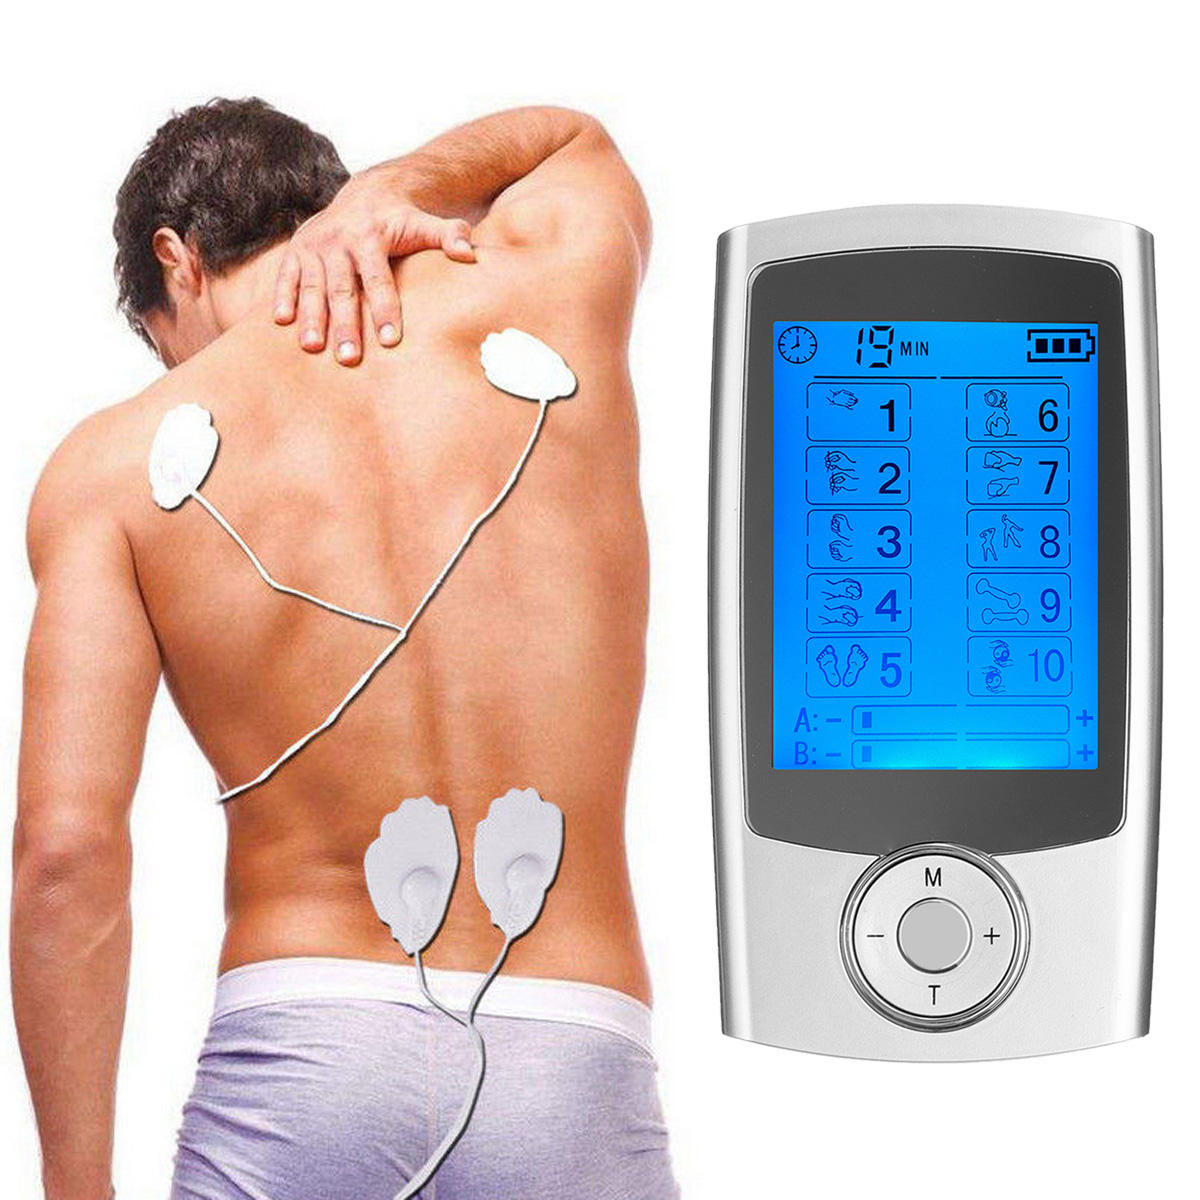 TENS Unit 10 Modes AB Electrotherapy Device Pulse Electric Massager Electrotherapy Pain Relief Therapy